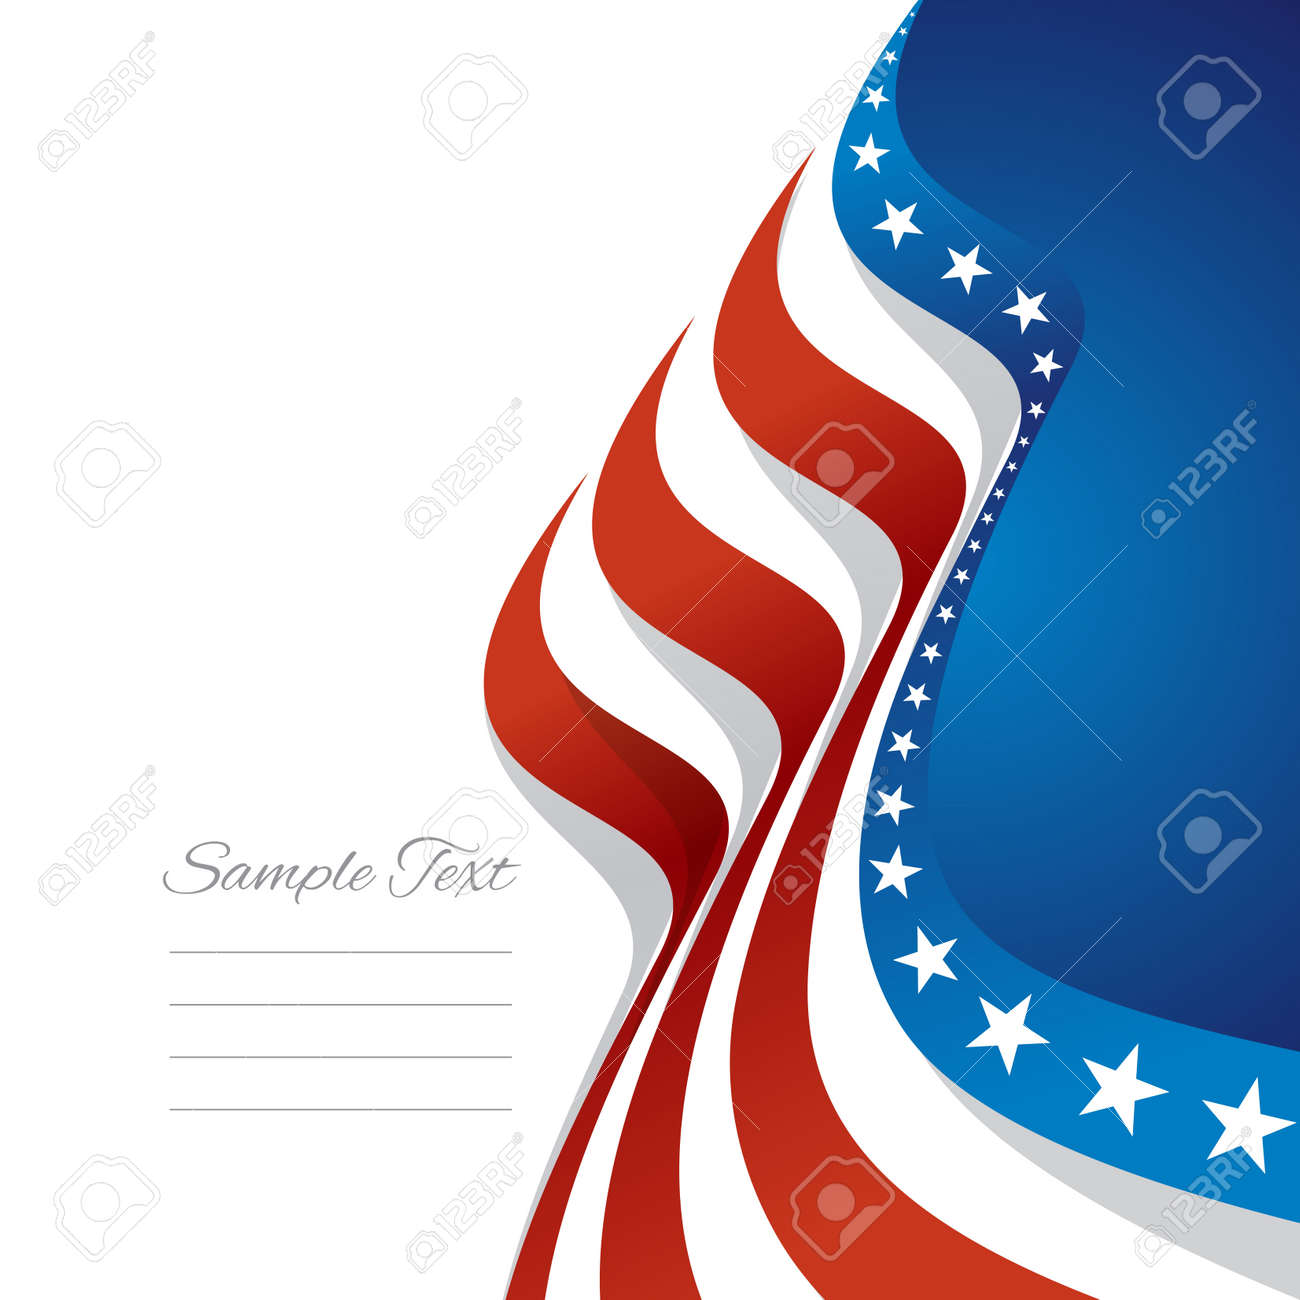 Abstract Us Flag Right Cover Blue Background Vector Royalty Free Cliparts Vectors And Stock Illustration Image 41657450